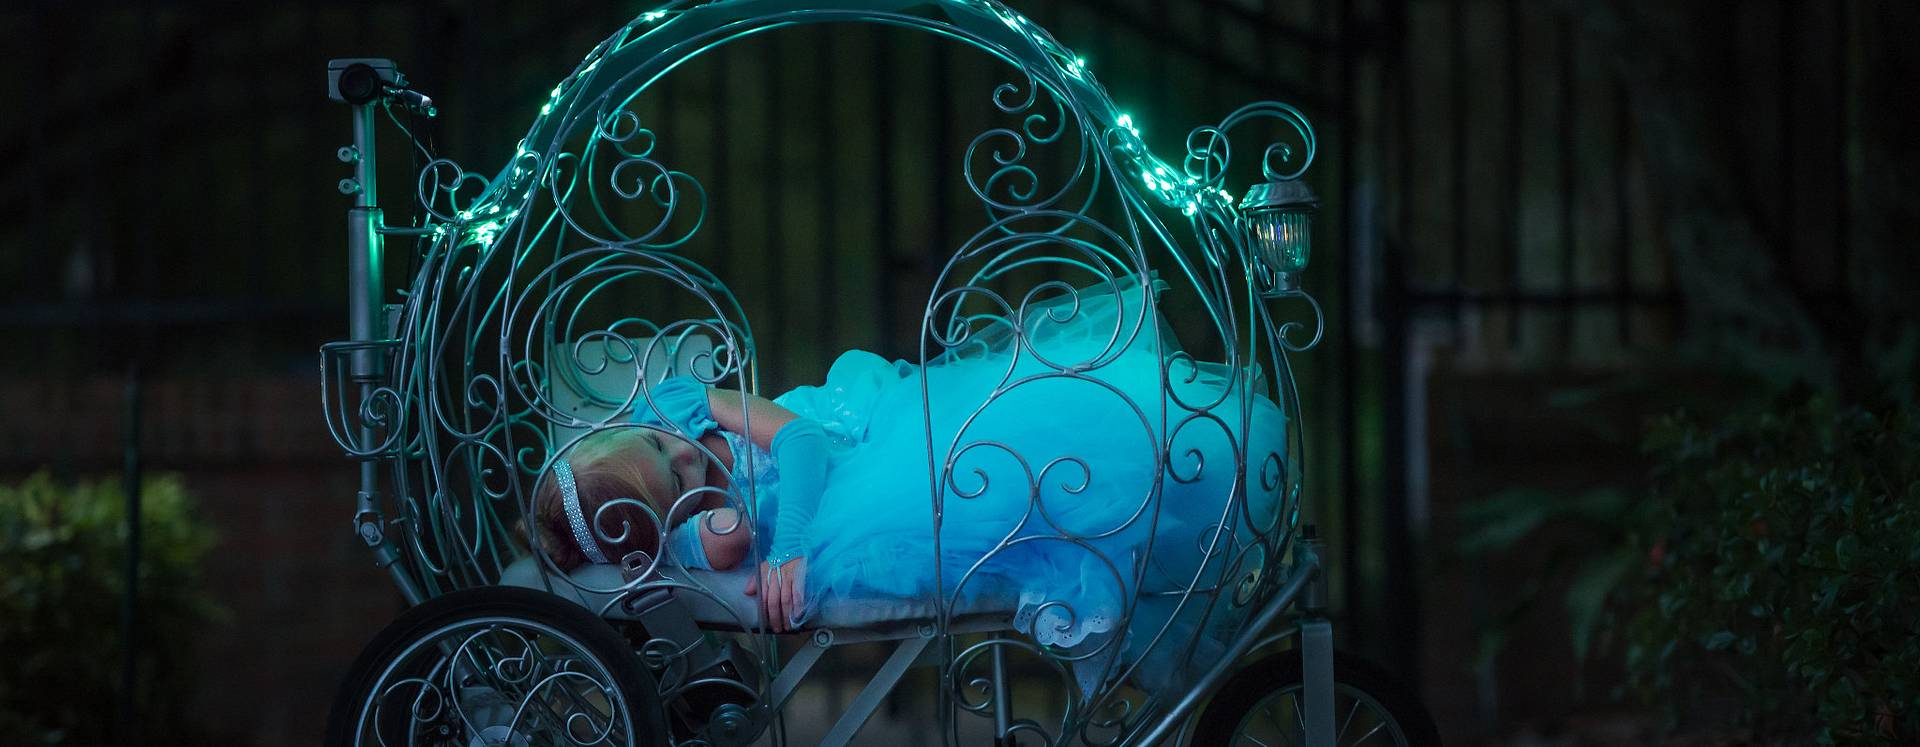 A girl dressed as a princess sleeping in a lit carriage from Princess Carriage Rentals at night in Orlando